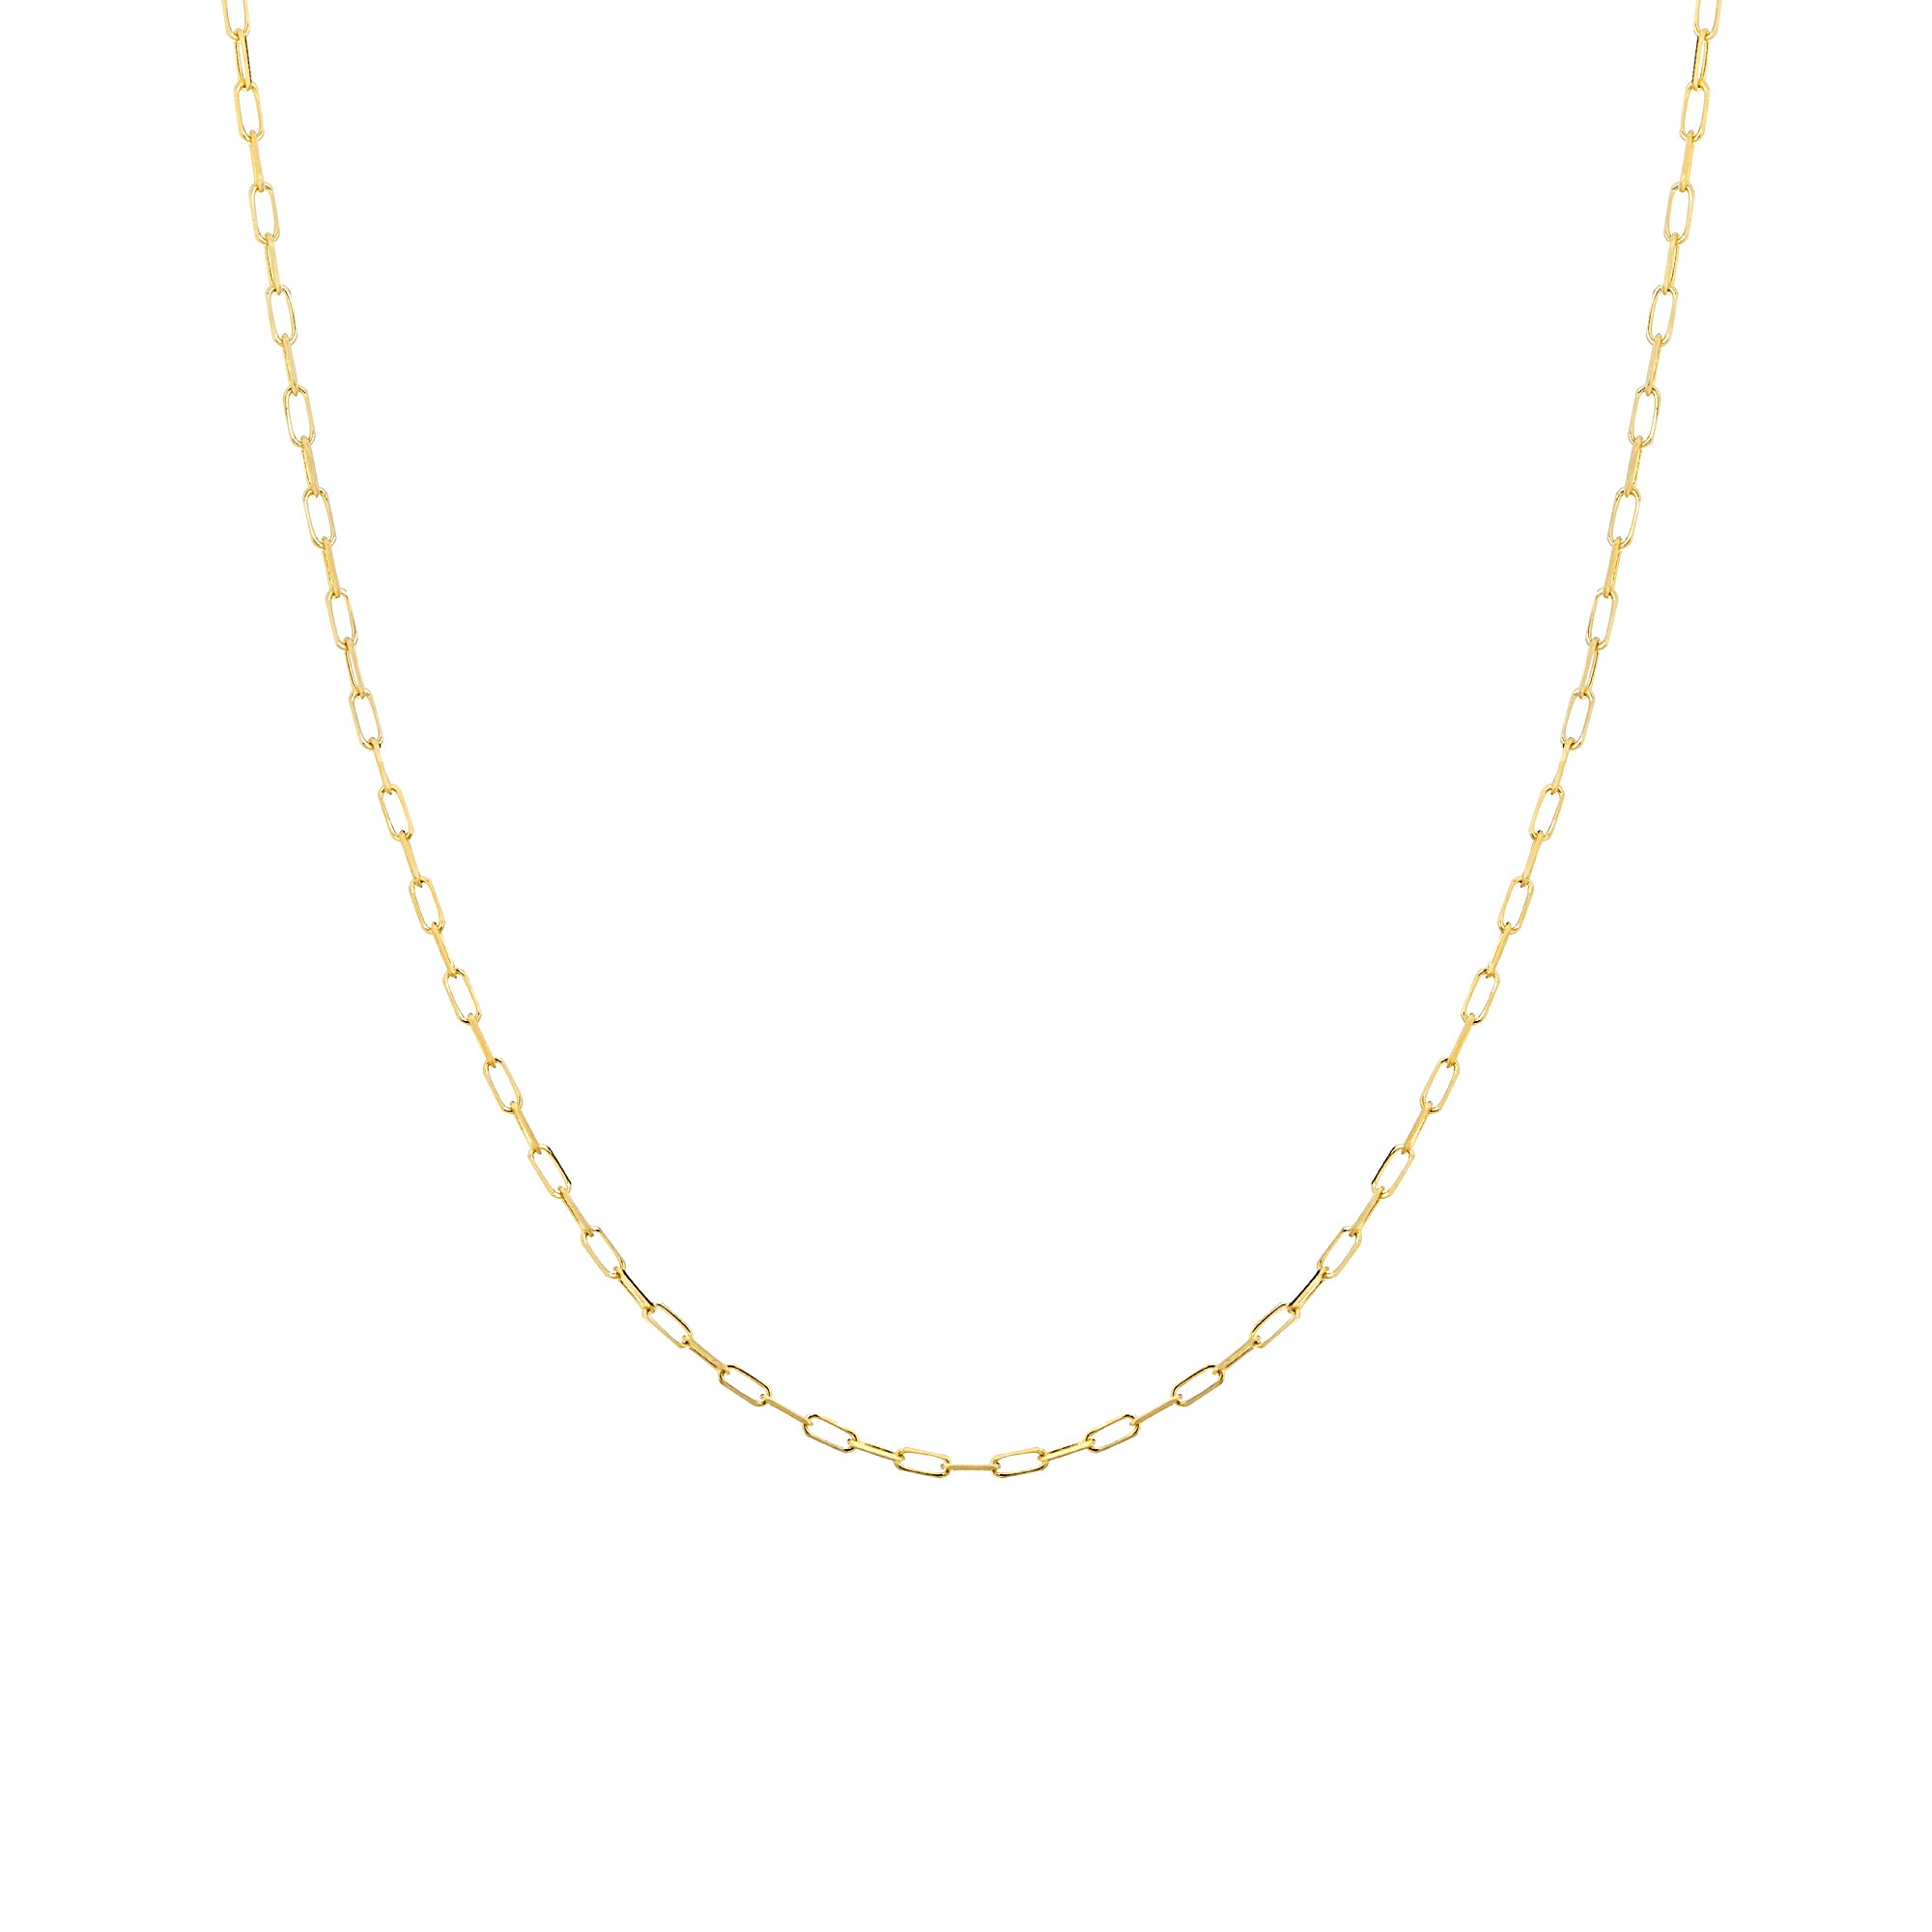 prd necklace curb product hei s men gold mens over wid in op chain silver jsp sharpen